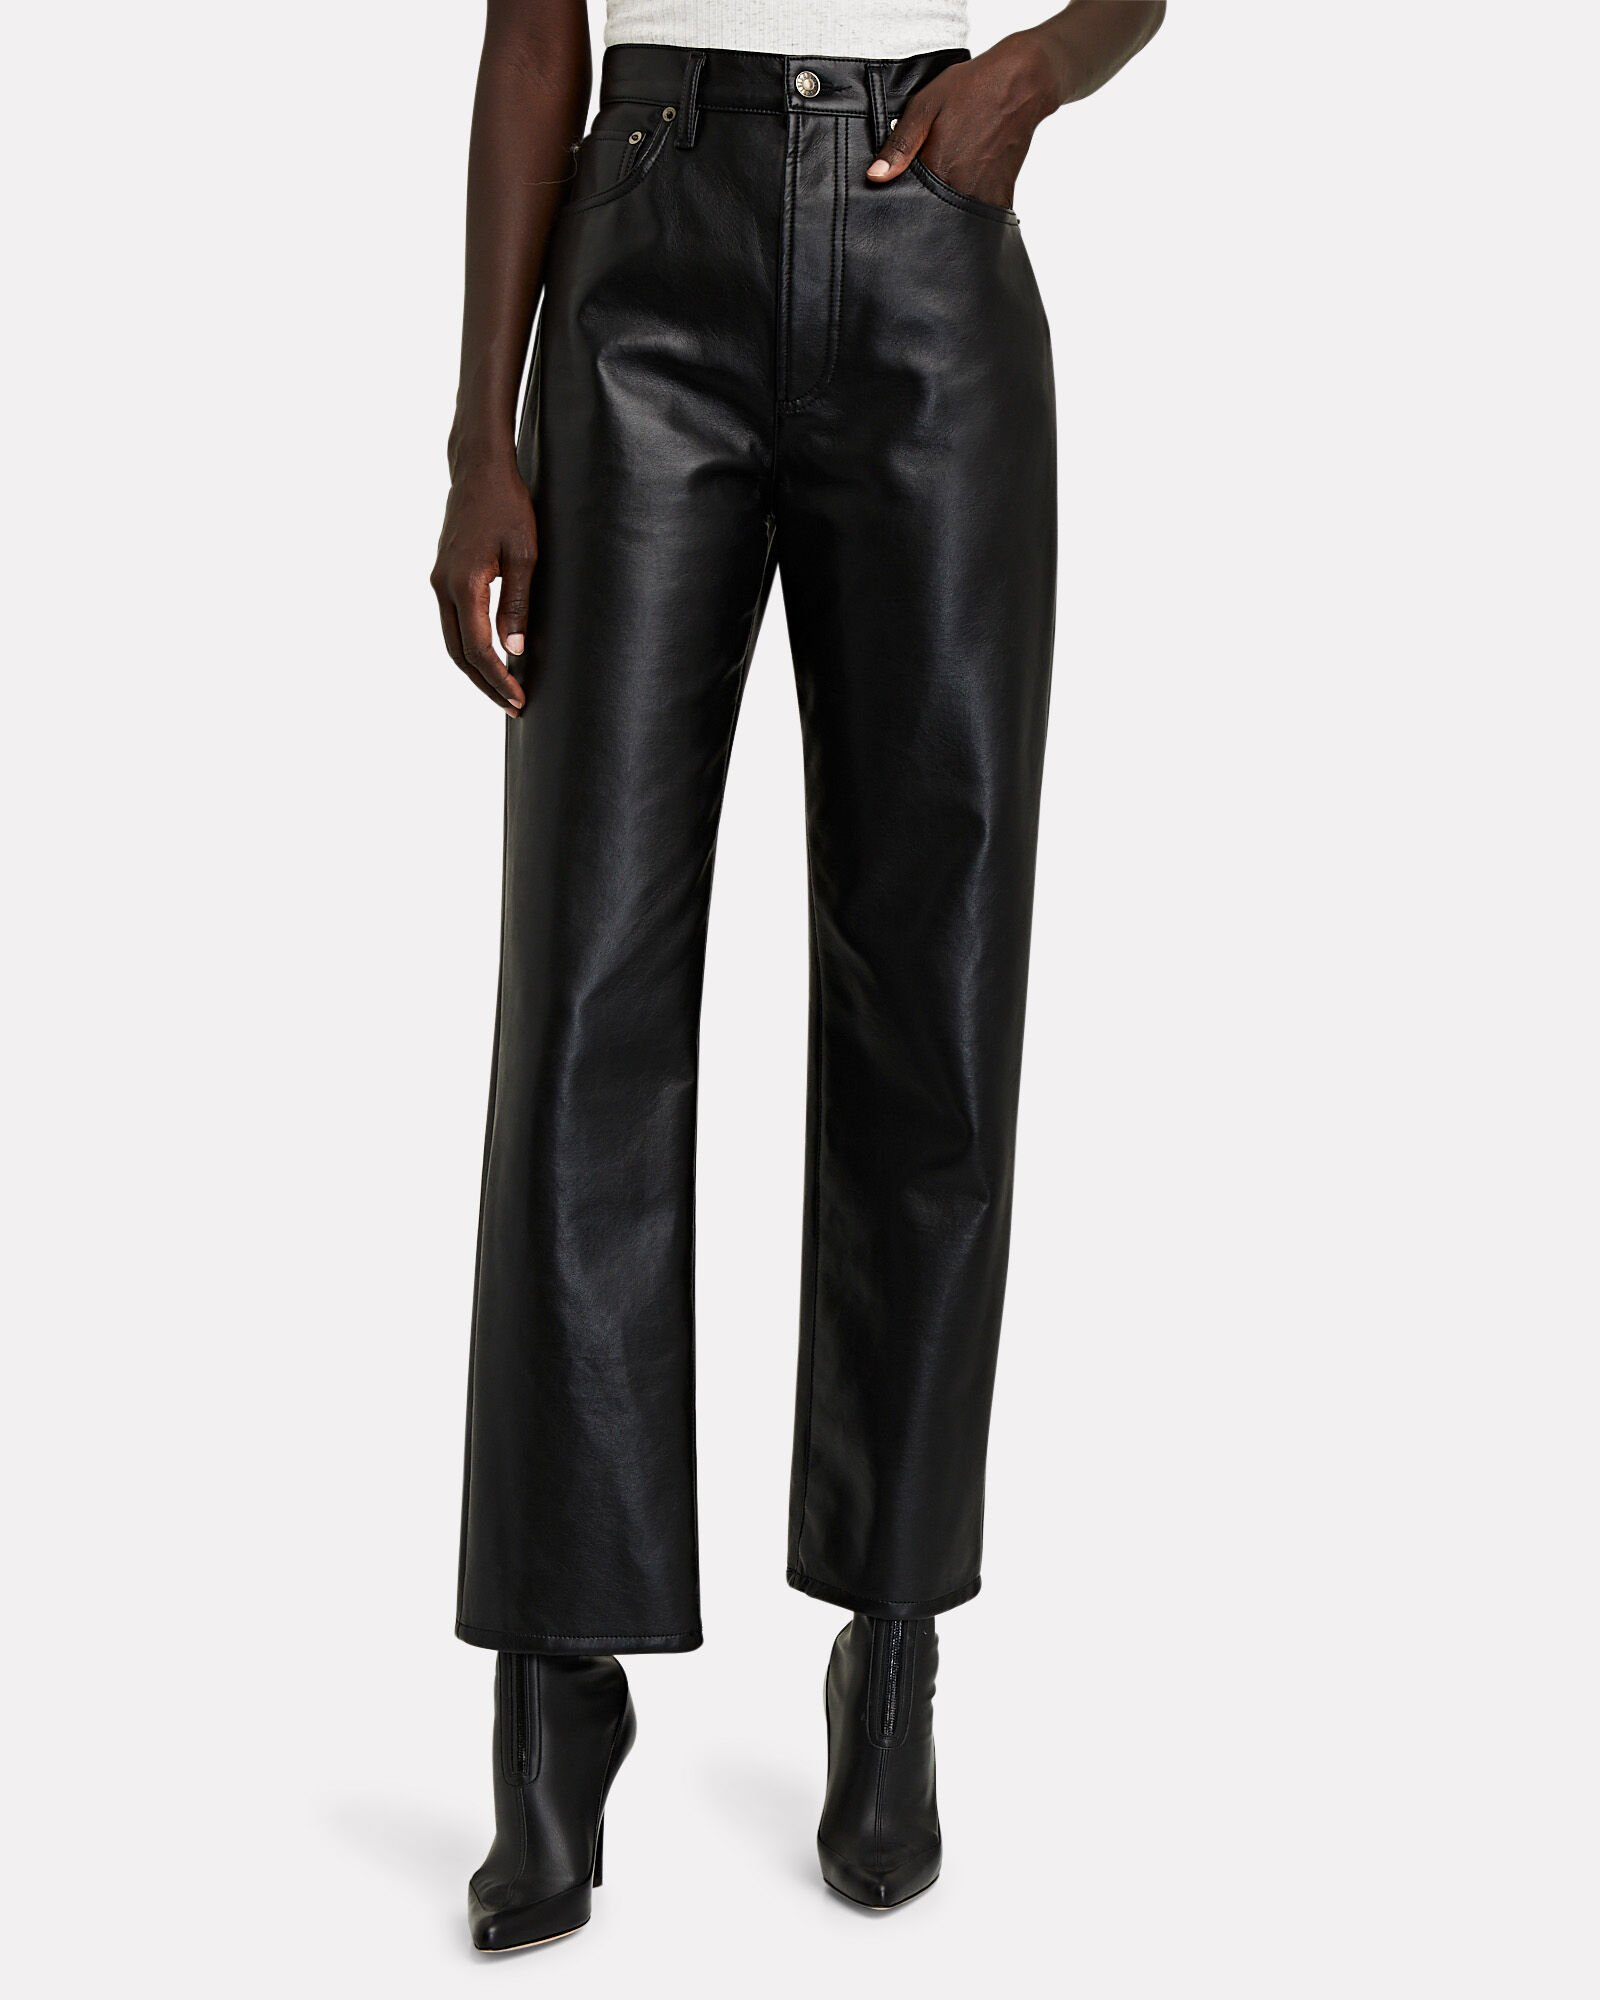 Fitted 90s Recycled Leather Pants by Agolde, available on intermixonline.com for $298 Kendall Jenner Pants Exact Product